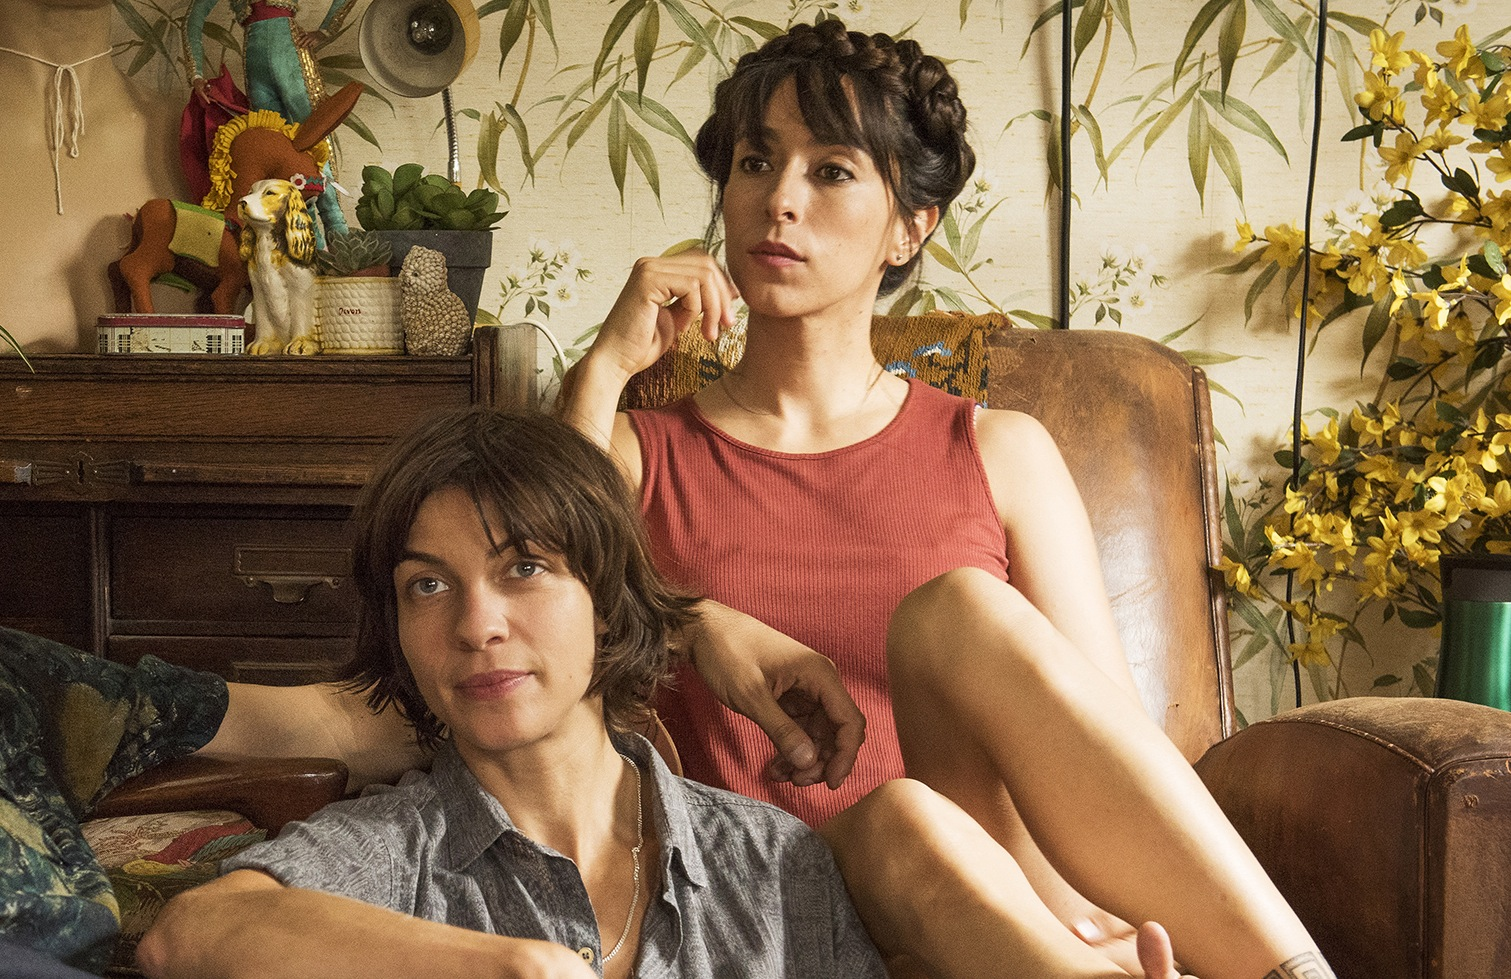 Two 'Game of Thrones' Actresses Lead Charming Lesbian Romance 'Anchor and Hope'